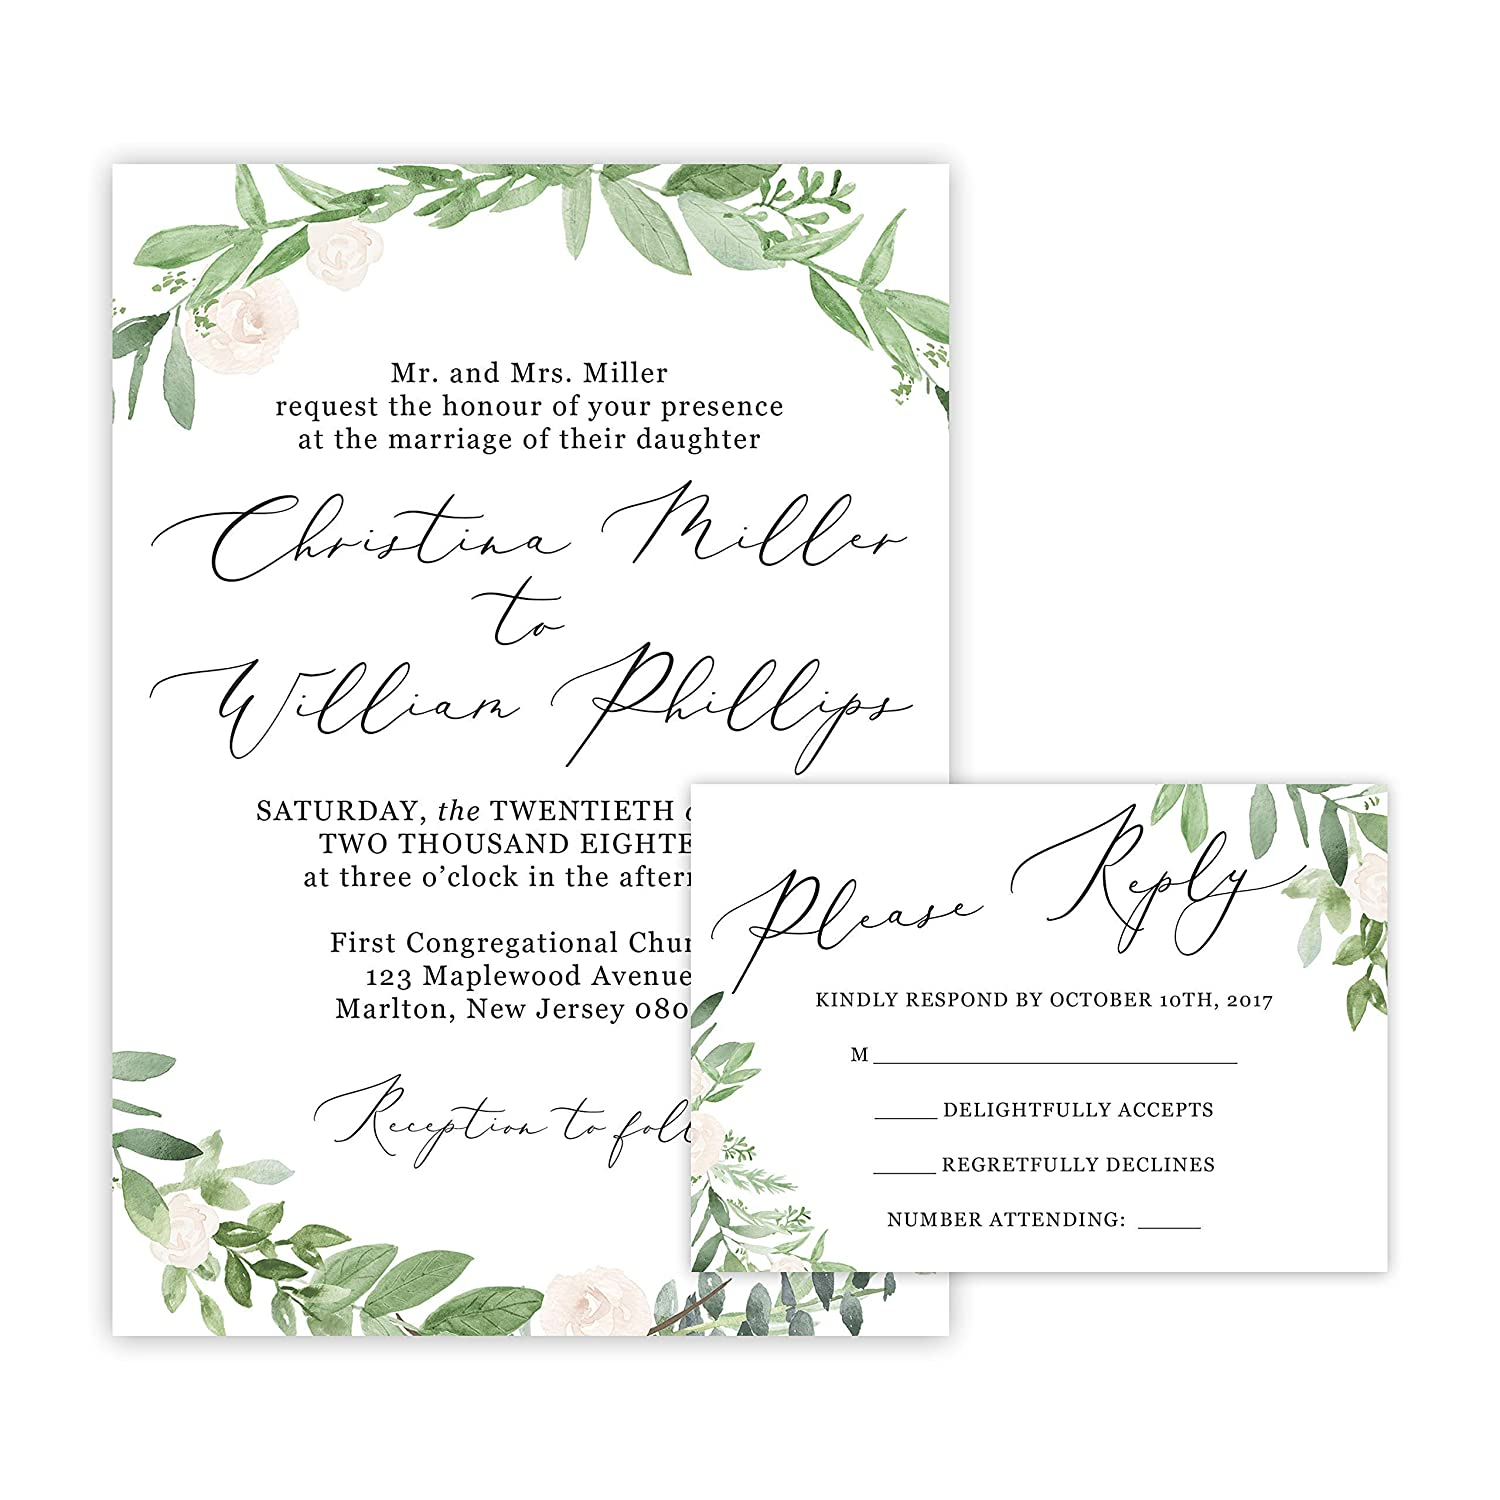 Amazon Com Greenery Wedding Invitations And Self Mailing Rsvp Cards Includes Envelopes For Set Greenery Wedding Invitations Handmade